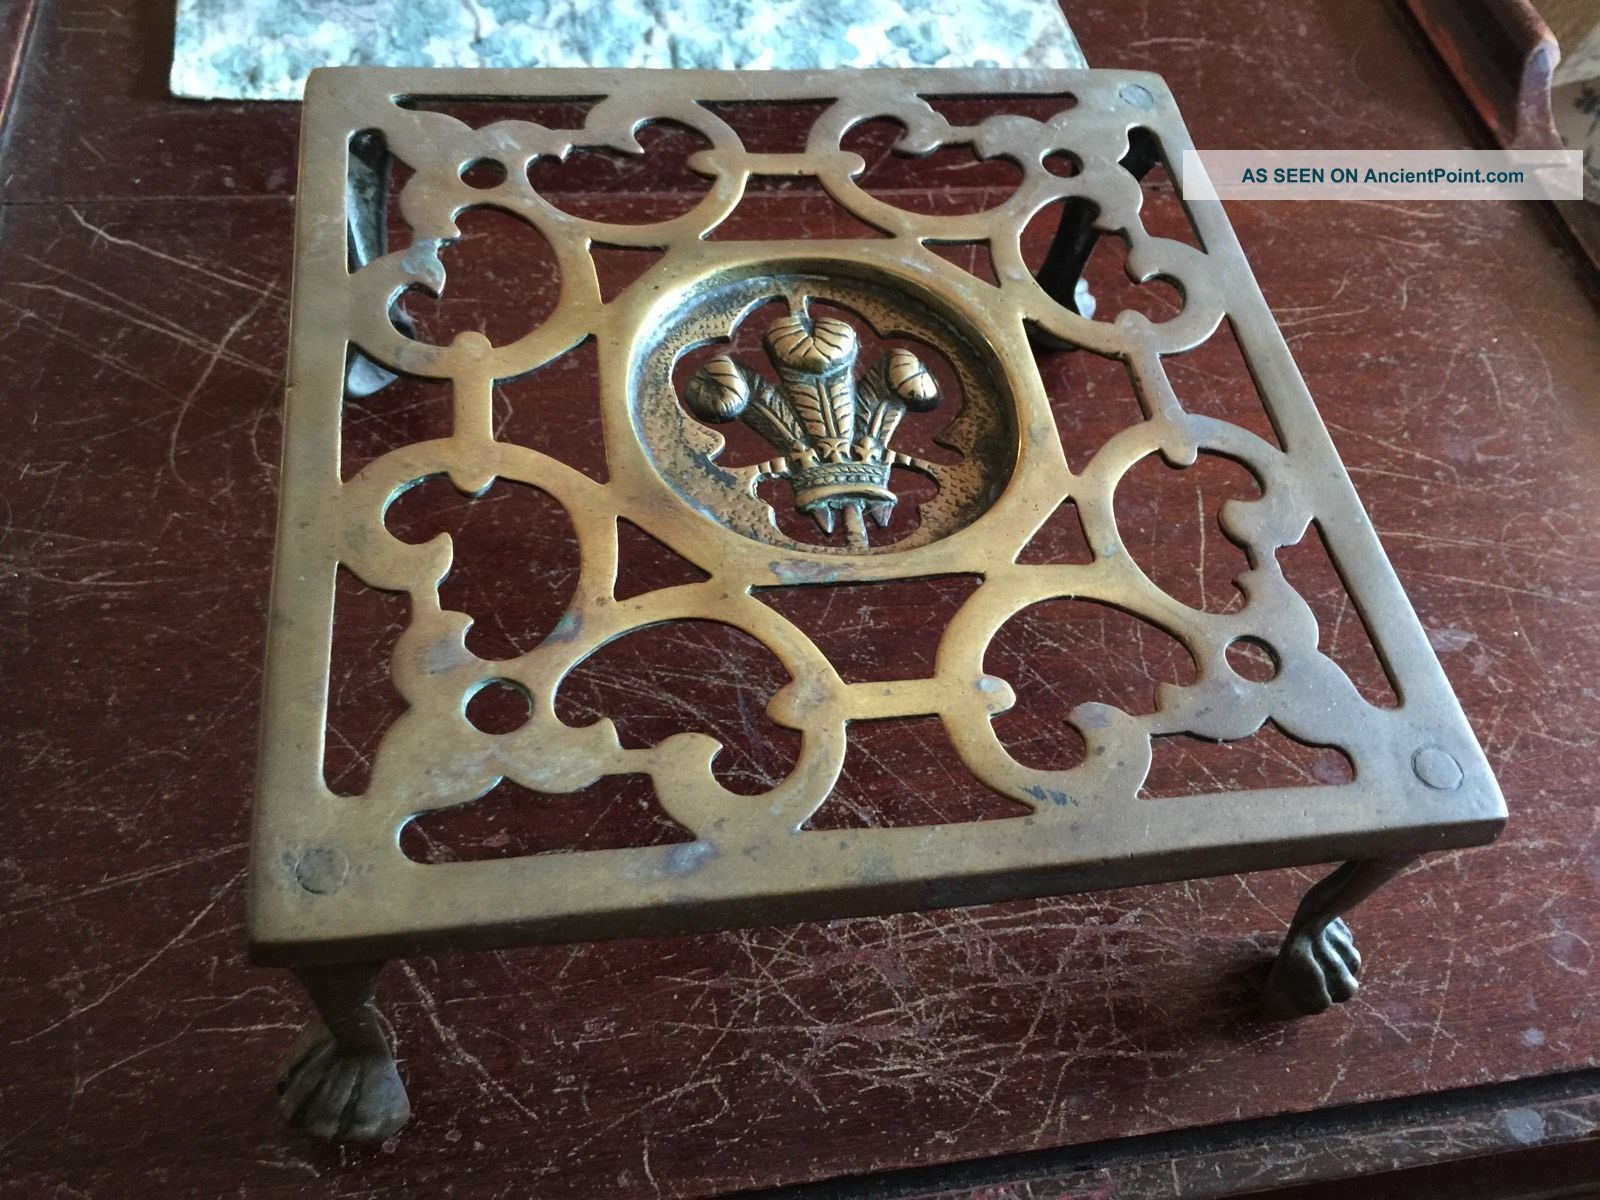 Vintage Ornate Brass Metal Fireplace Hearth Kettle Or Cooking Trivet Stand Trivets photo